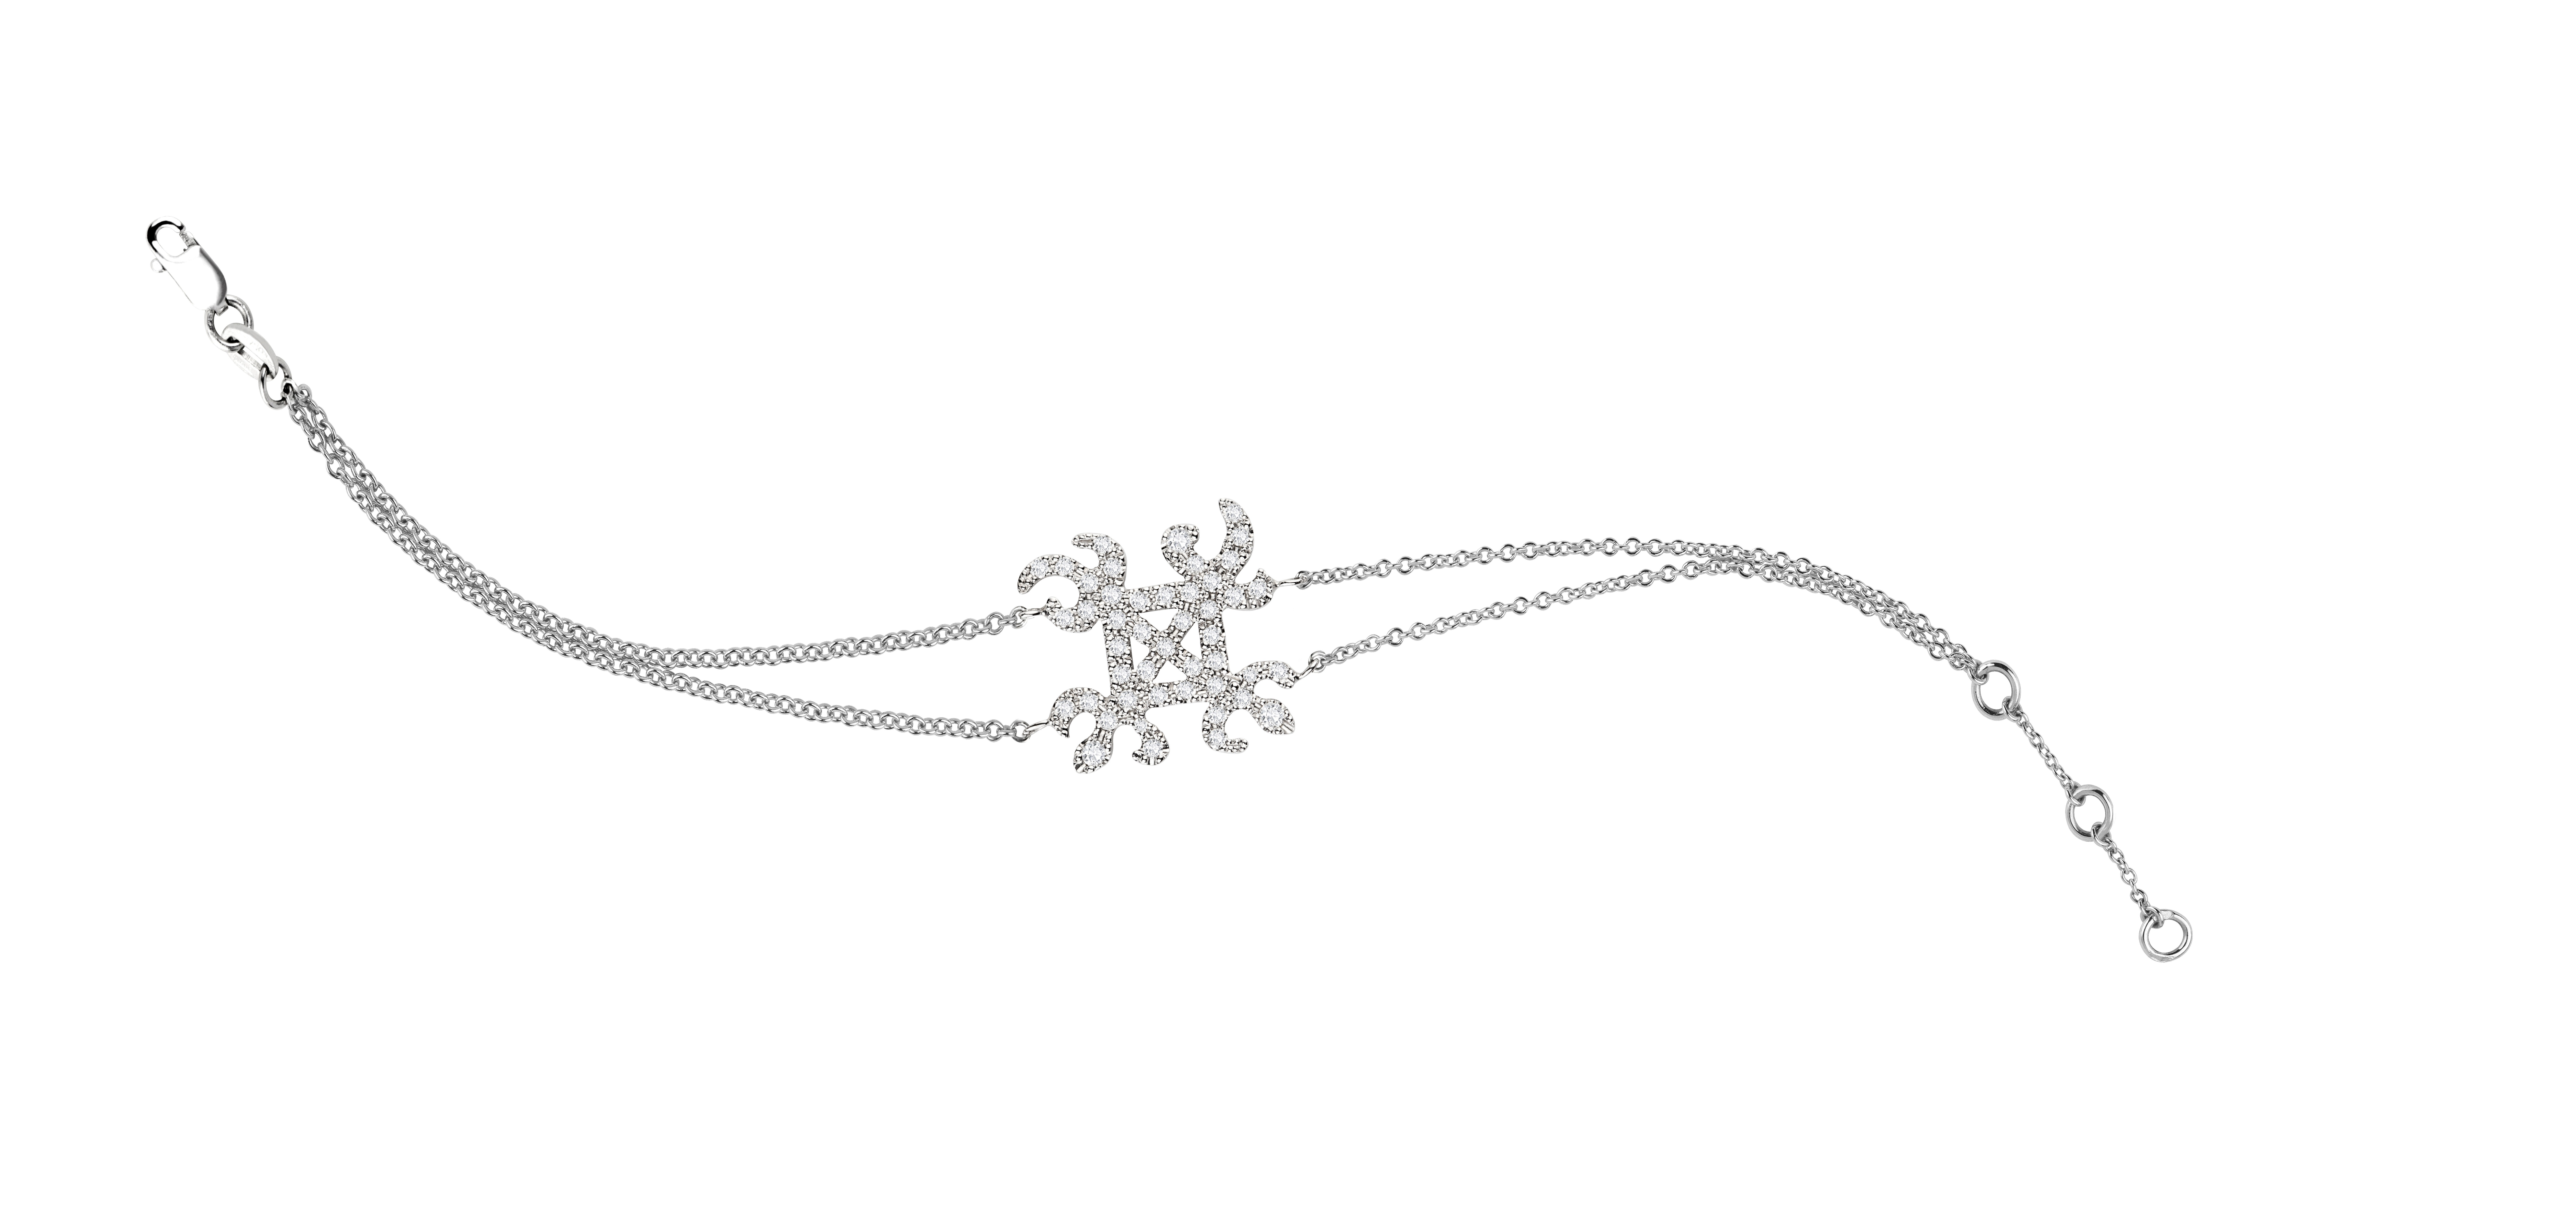 Solidarité Bakwani7 Or diamants – Bracelet Double